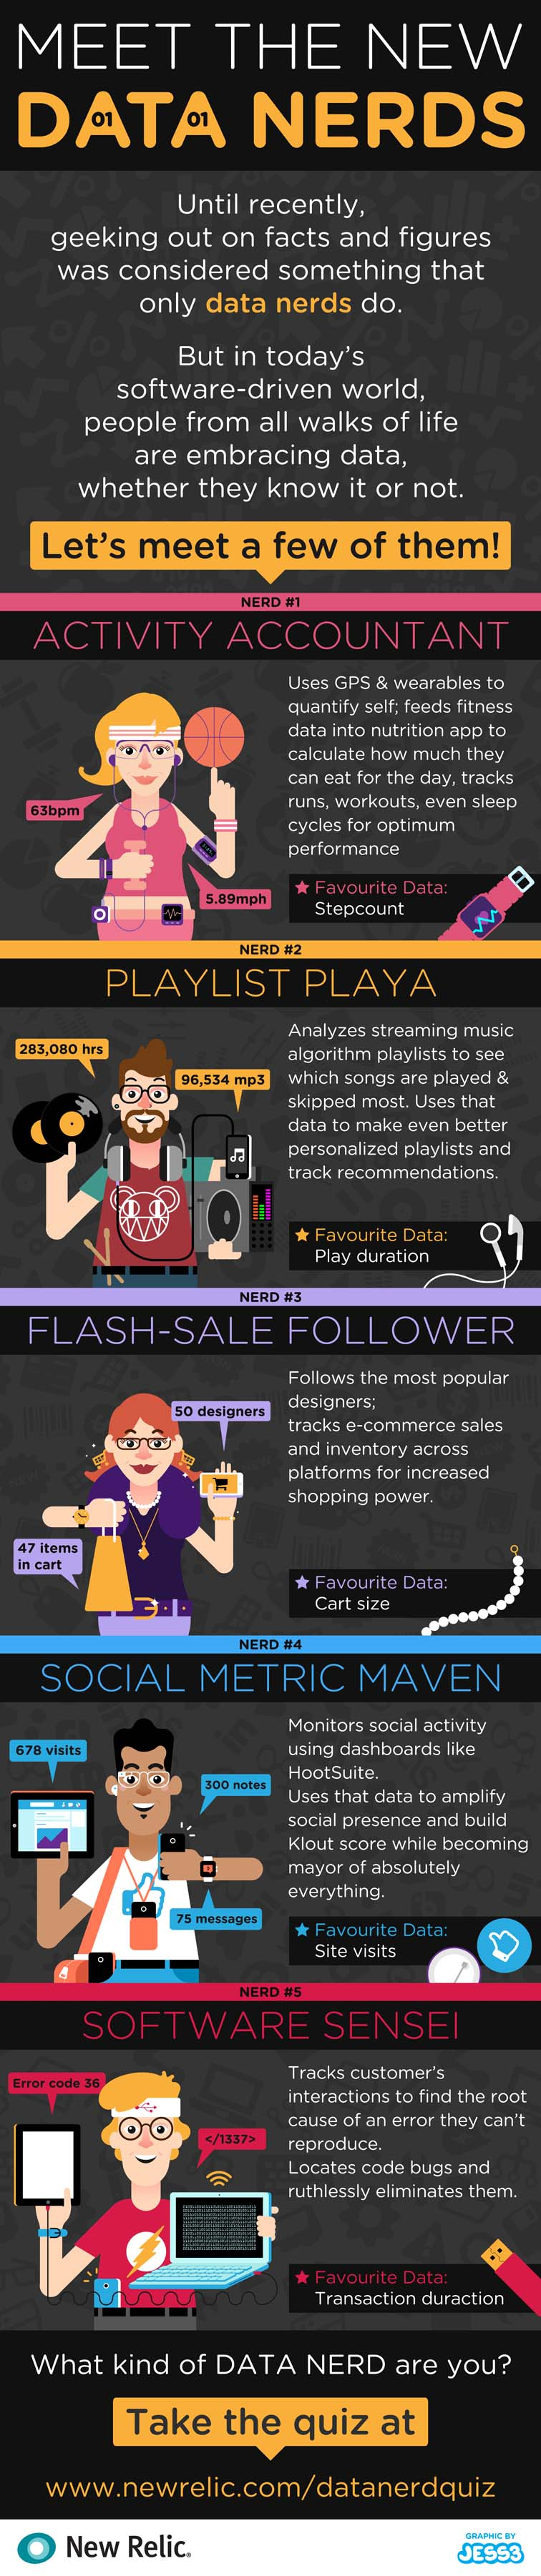 New Relic Data Nerd Infographic 5721